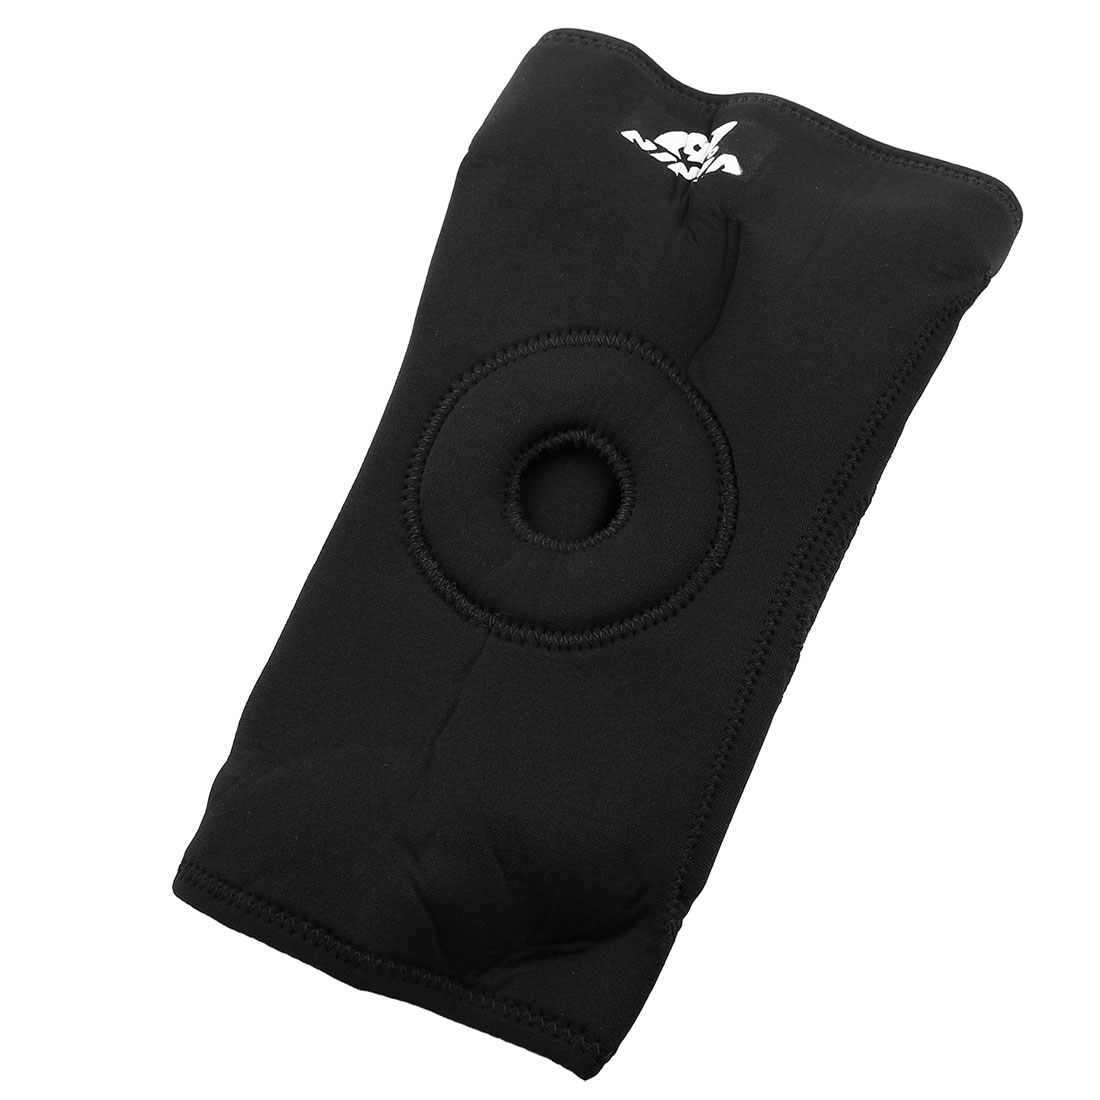 Sports Stretchy Knee Brace Compression Support Sleeves Black Arthritis Relief